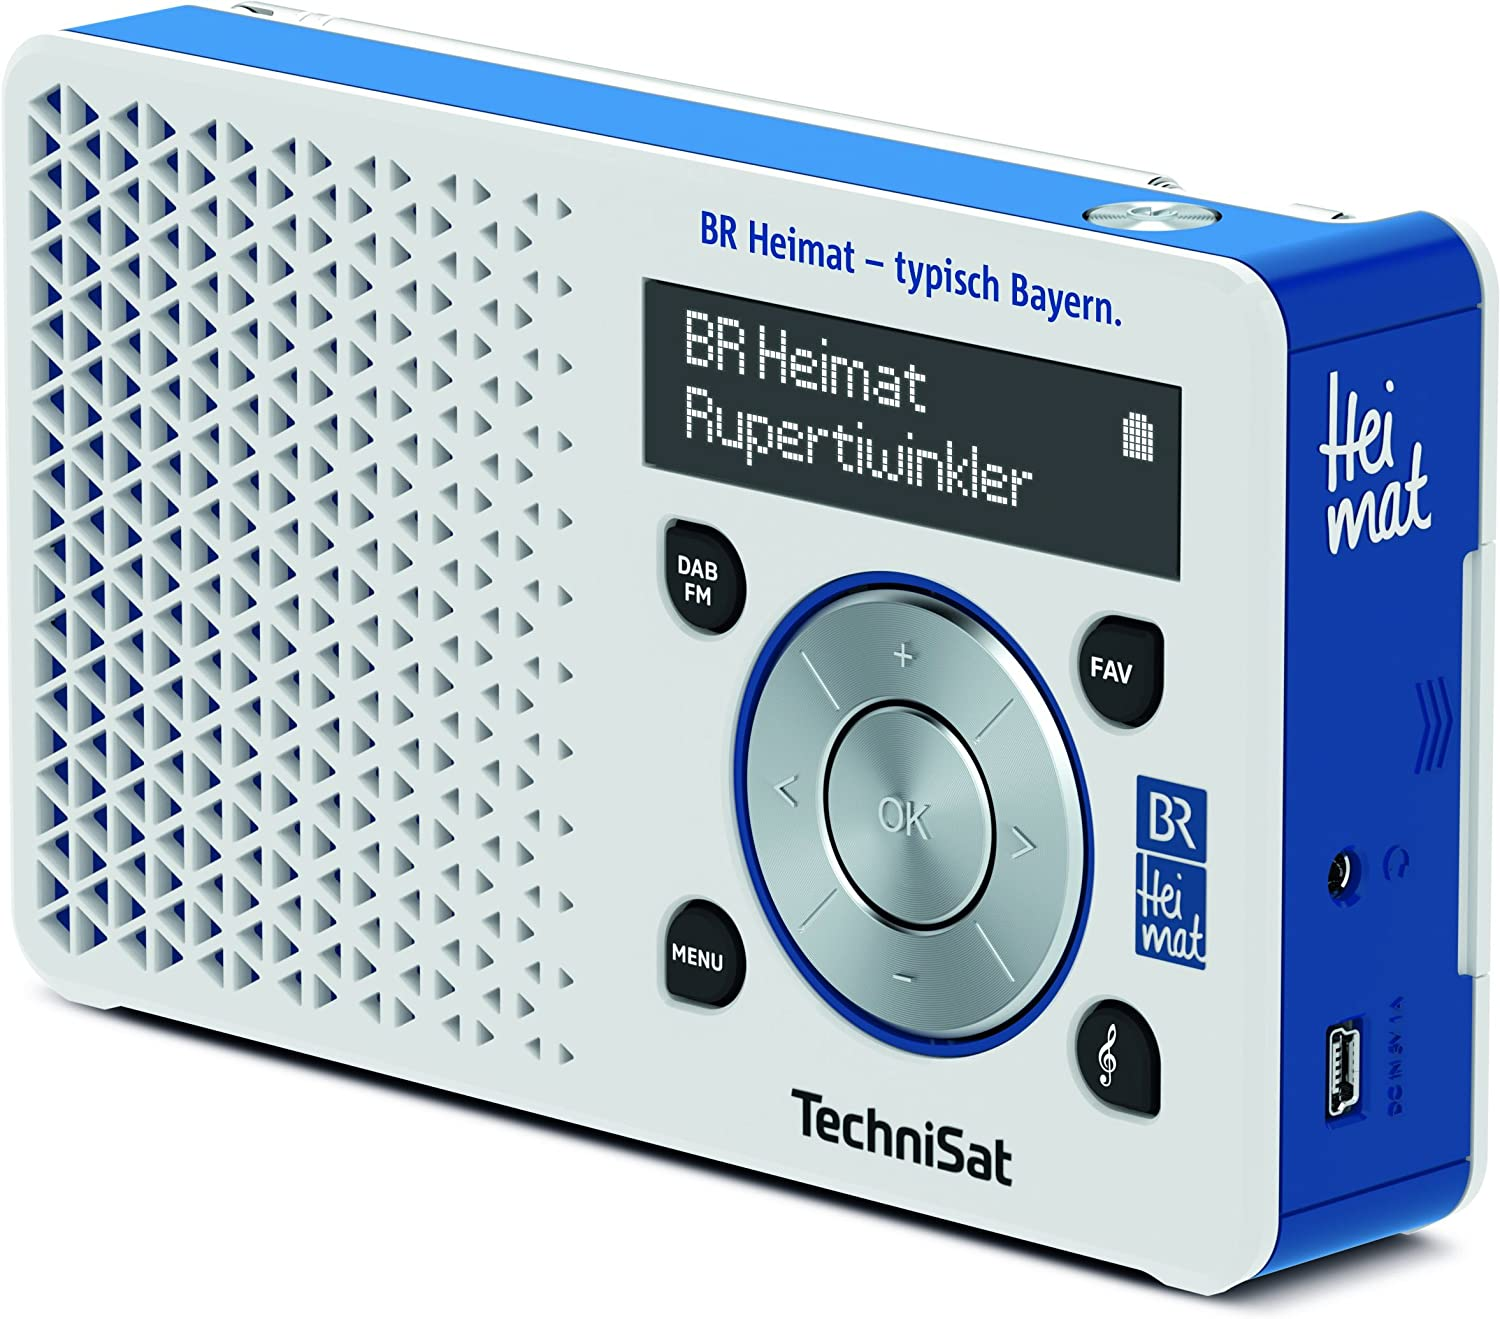 Technisat Digitradio 1 Br Heimat Edition Portables Dab Radio Klein Tragbar Mit Lautsprecher Dab Ukw Favoritenspeicher Direktwahltaste Zu Br Heimat Weiss Blau Amazon De Heimkino Tv Video